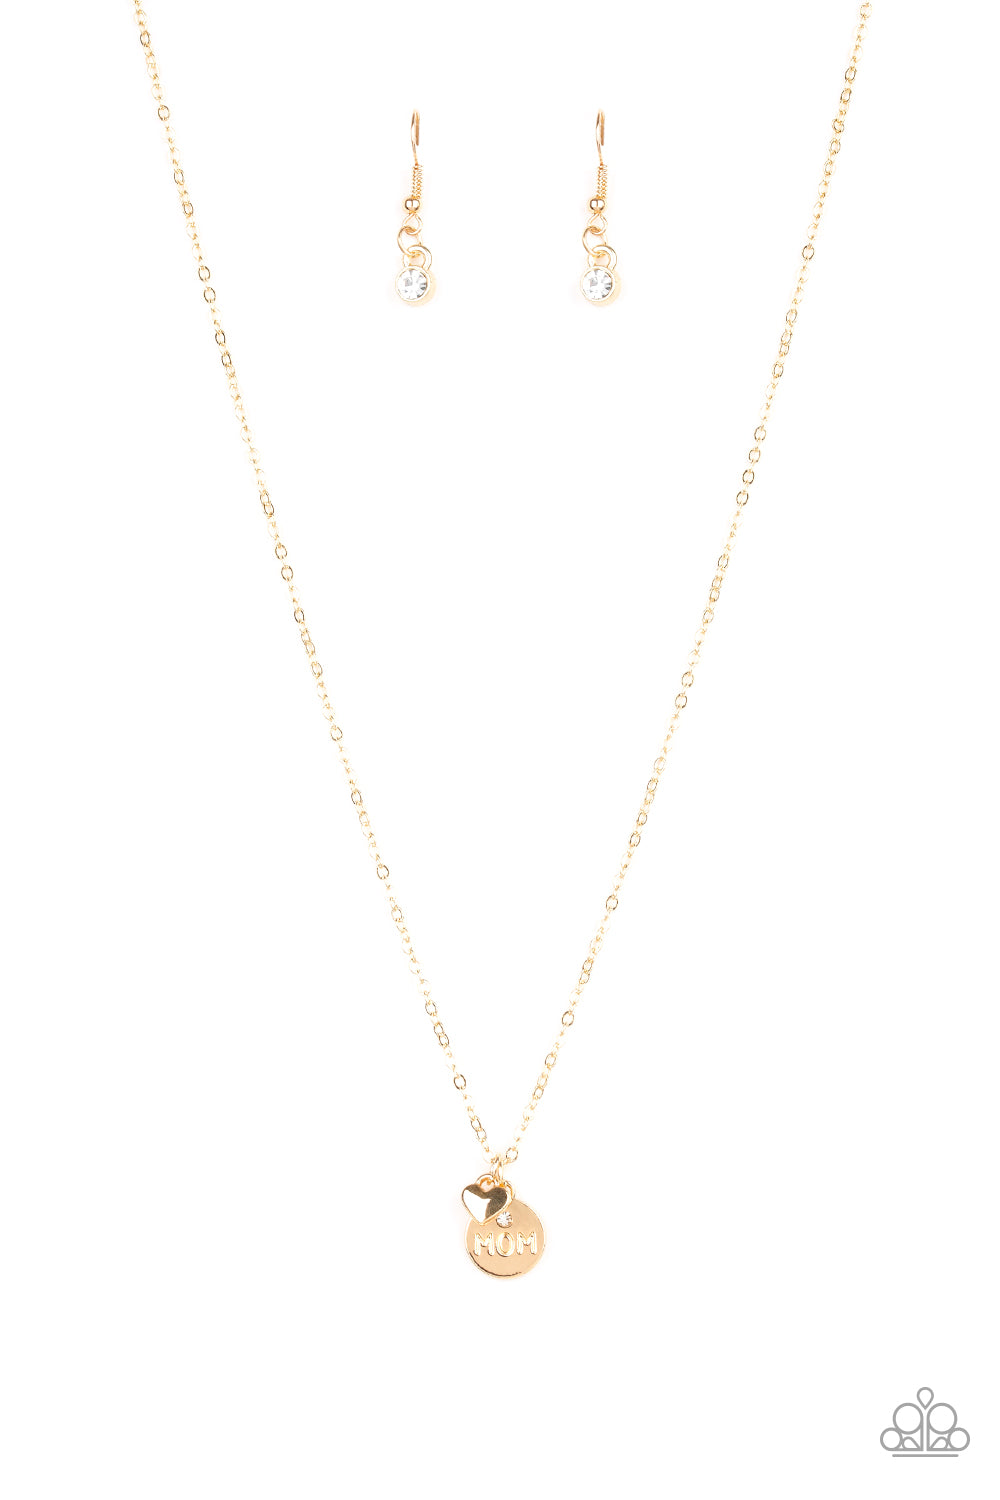 Paparazzi Accessories - Worlds Best Mom - Gold Necklace Set - JMJ Jewelry Collection